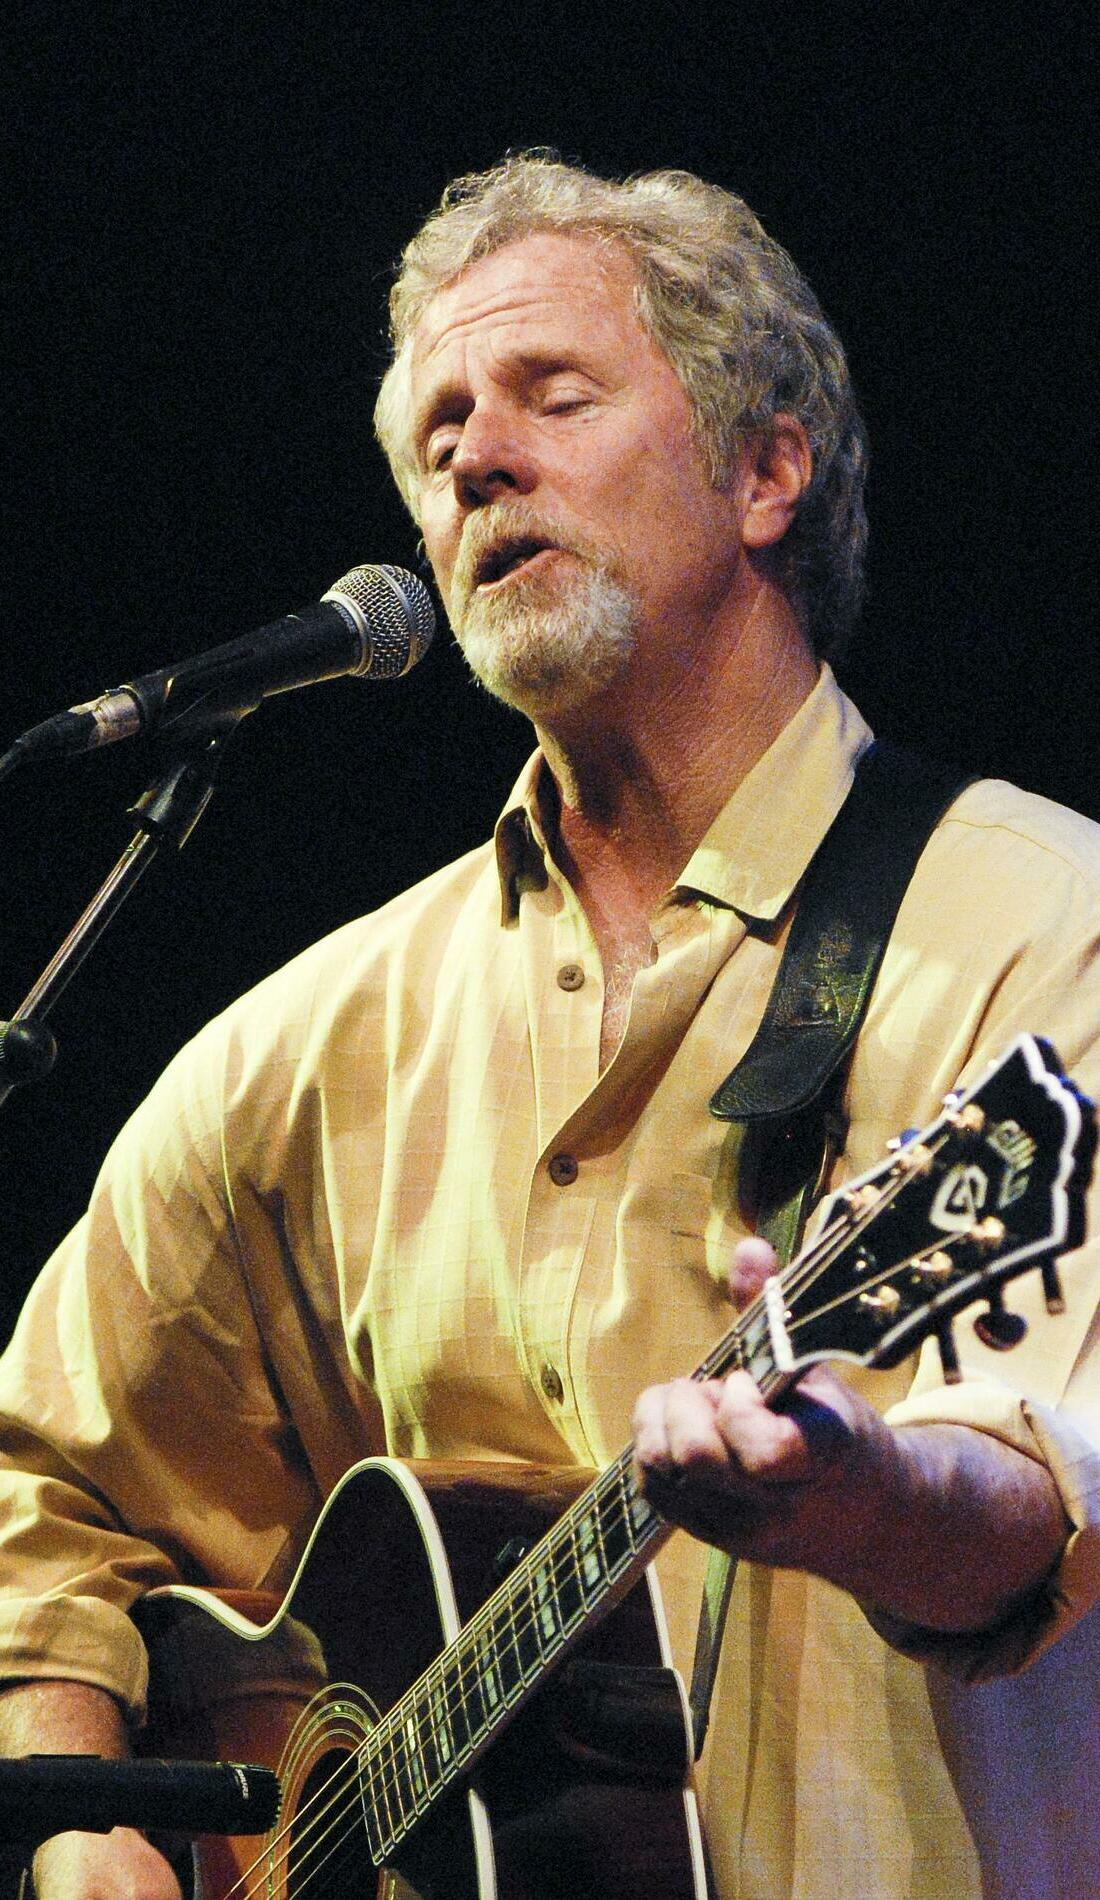 A Chris Hillman live event